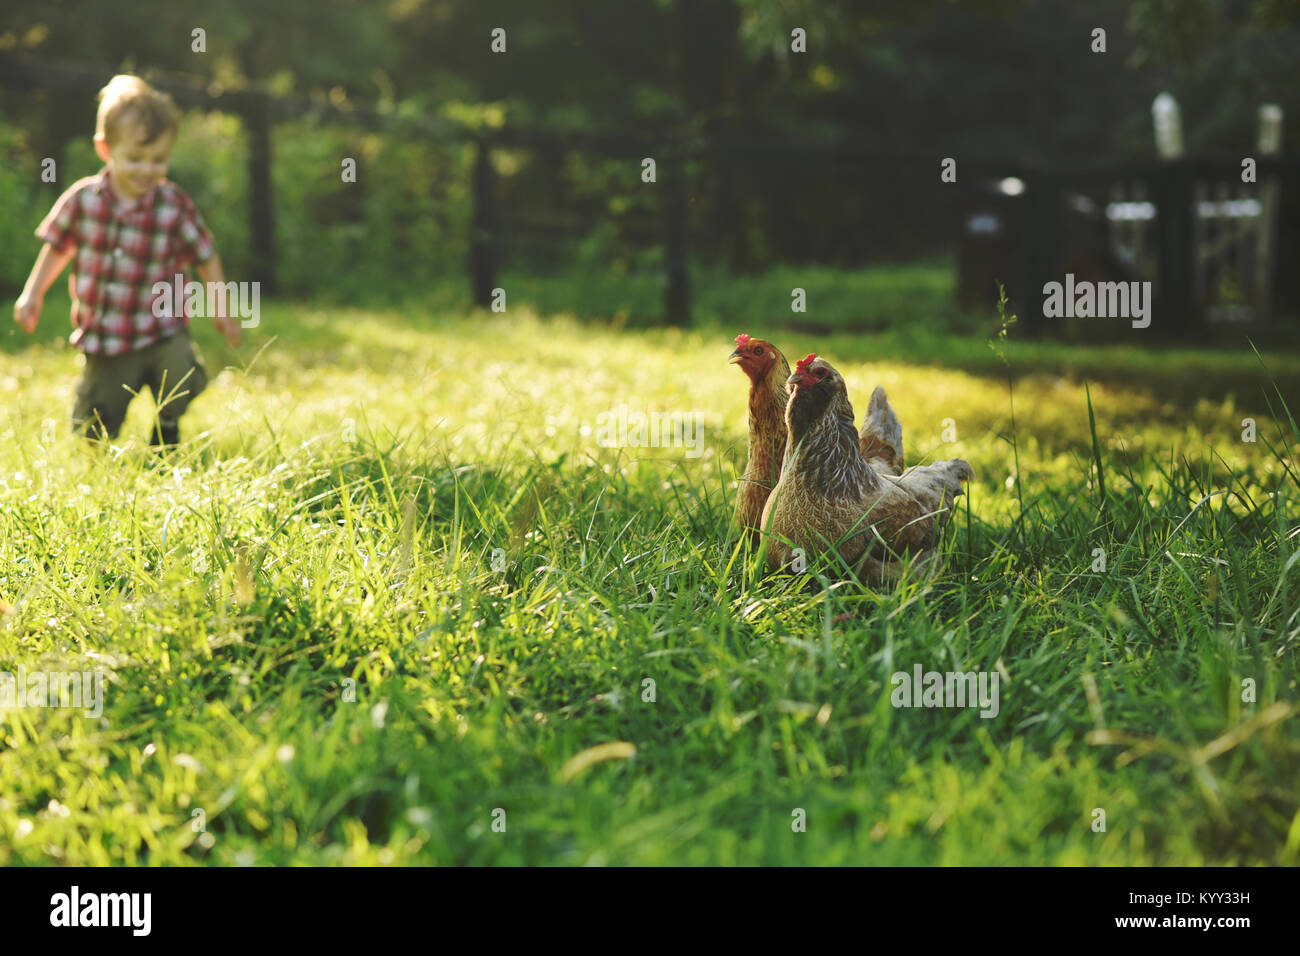 Boy on field with hens in foreground - Stock Image